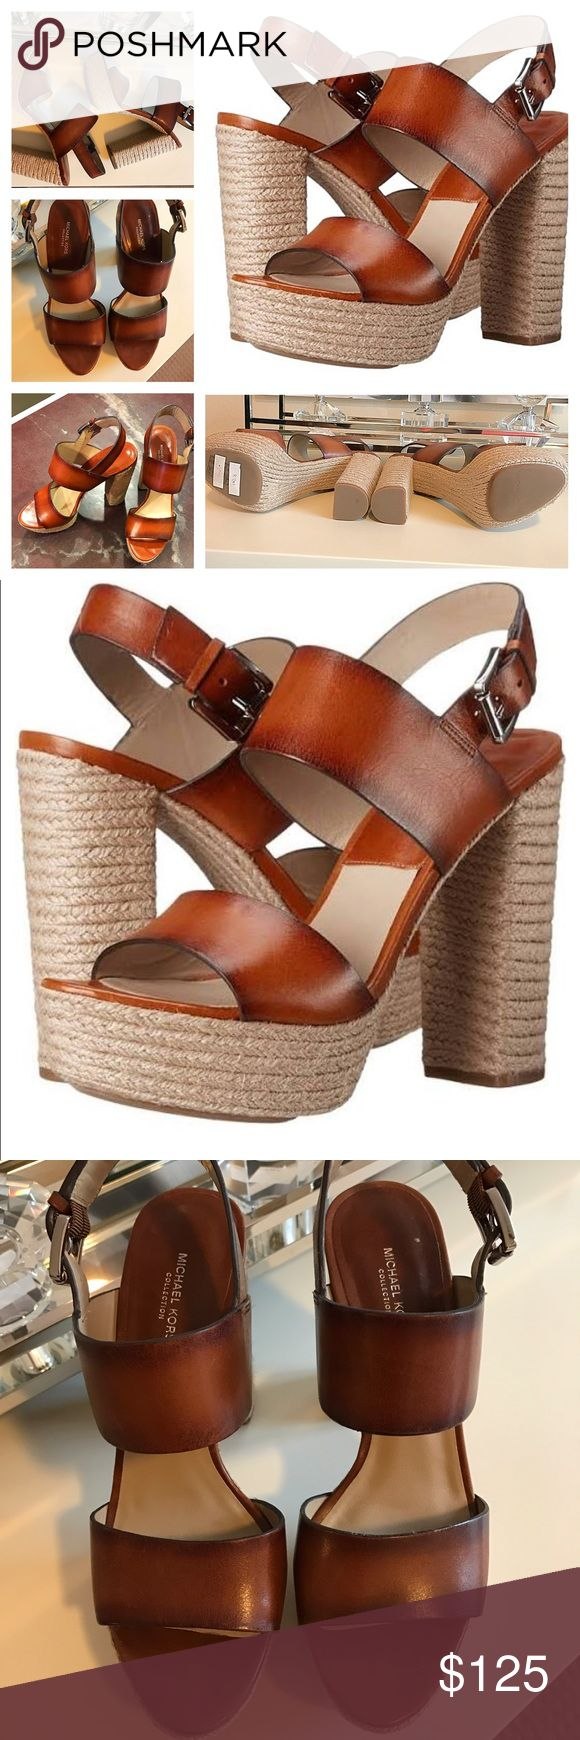 LIKE NEW Michael Kors Platform Sandals 7.5 Jute!! LIKE NEW Michael Kors Platform Sandals Women's Size 7.5 Bourbon Leather & Jute!! Excellent condition Michael Kors platform sandal with clean soles, spotless leather, and fresh buckle.  5 out of 5 stars ✨ MSRP $245 on MK site!  SHOP BFLYBABE22 CLOSET FOR OTHER FABULOUS HAUTE COUTURE CLOSET STAPLES! Buy any 2 items, receive 15% off! Free gift with any full purchase price order now til' the ball drops NYE! 🎉 Michael Kors Shoes Platforms